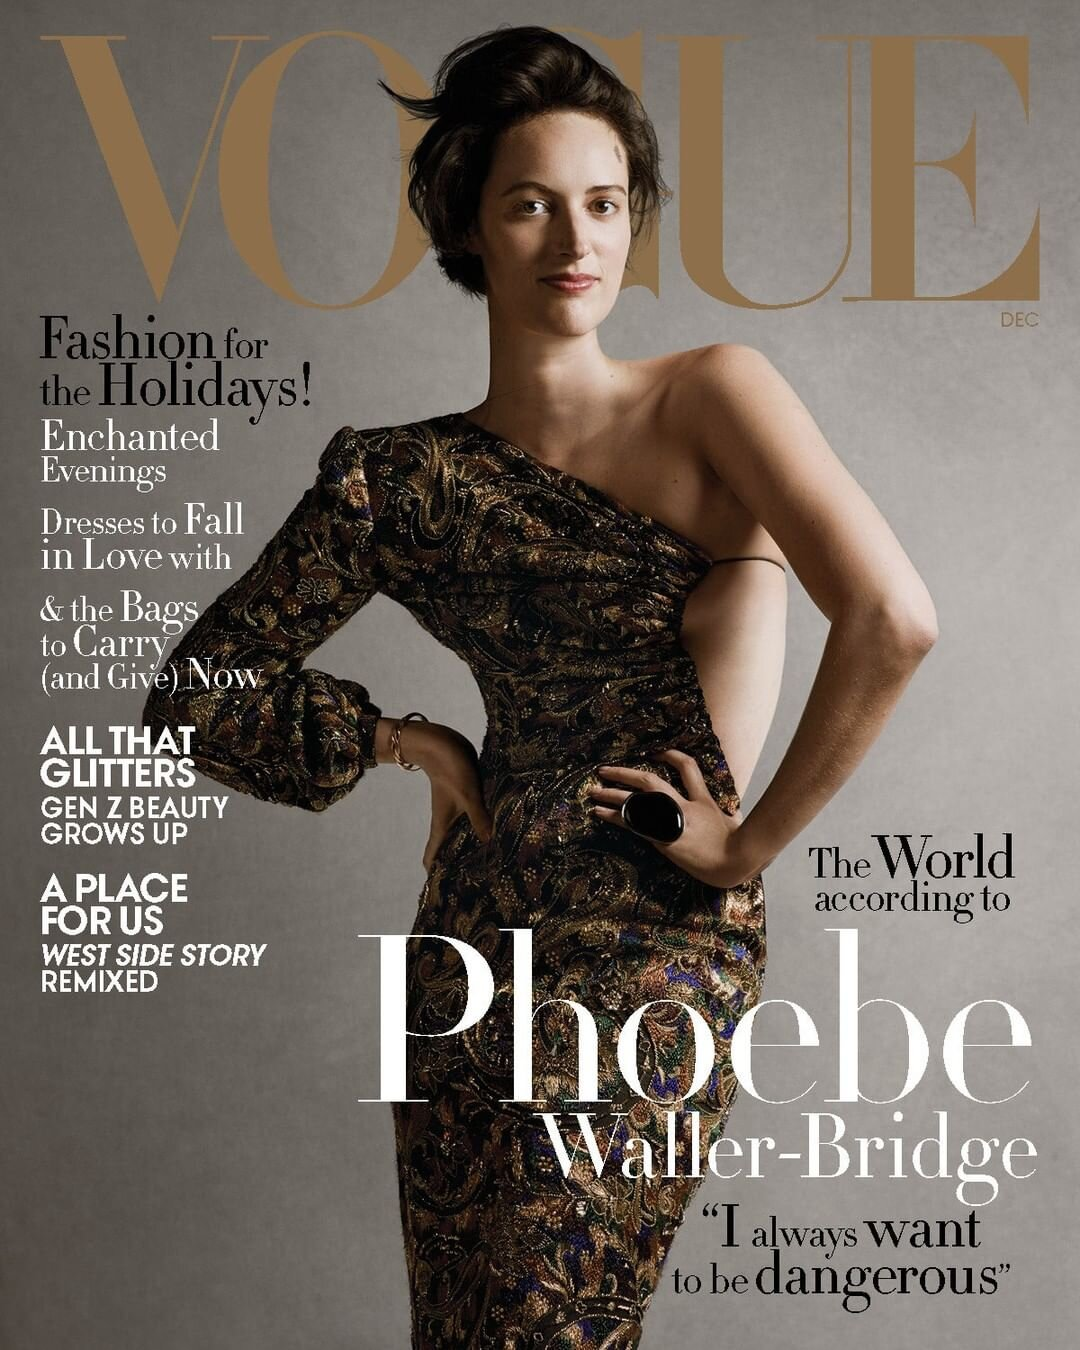 Phoebe Waller-Bridge by Ethan James Green for Vogue US December 2019 (3).jpg